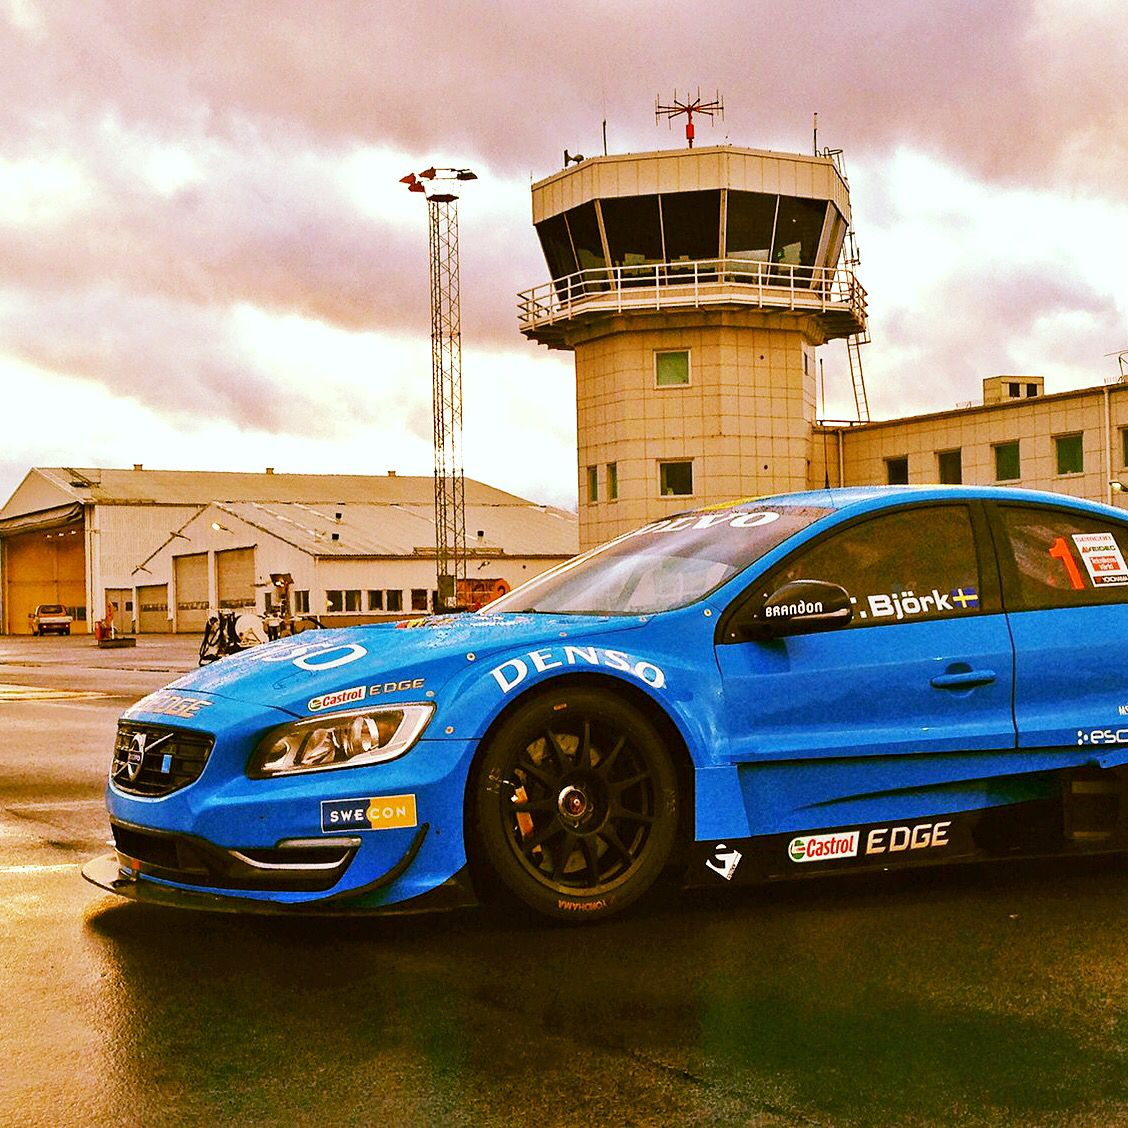 The 2015 Stcc Calendar Has Been Unveiled Season Starts At New Skovde Airport Race In May With Volvo Polestar Racing Auto Veiculos